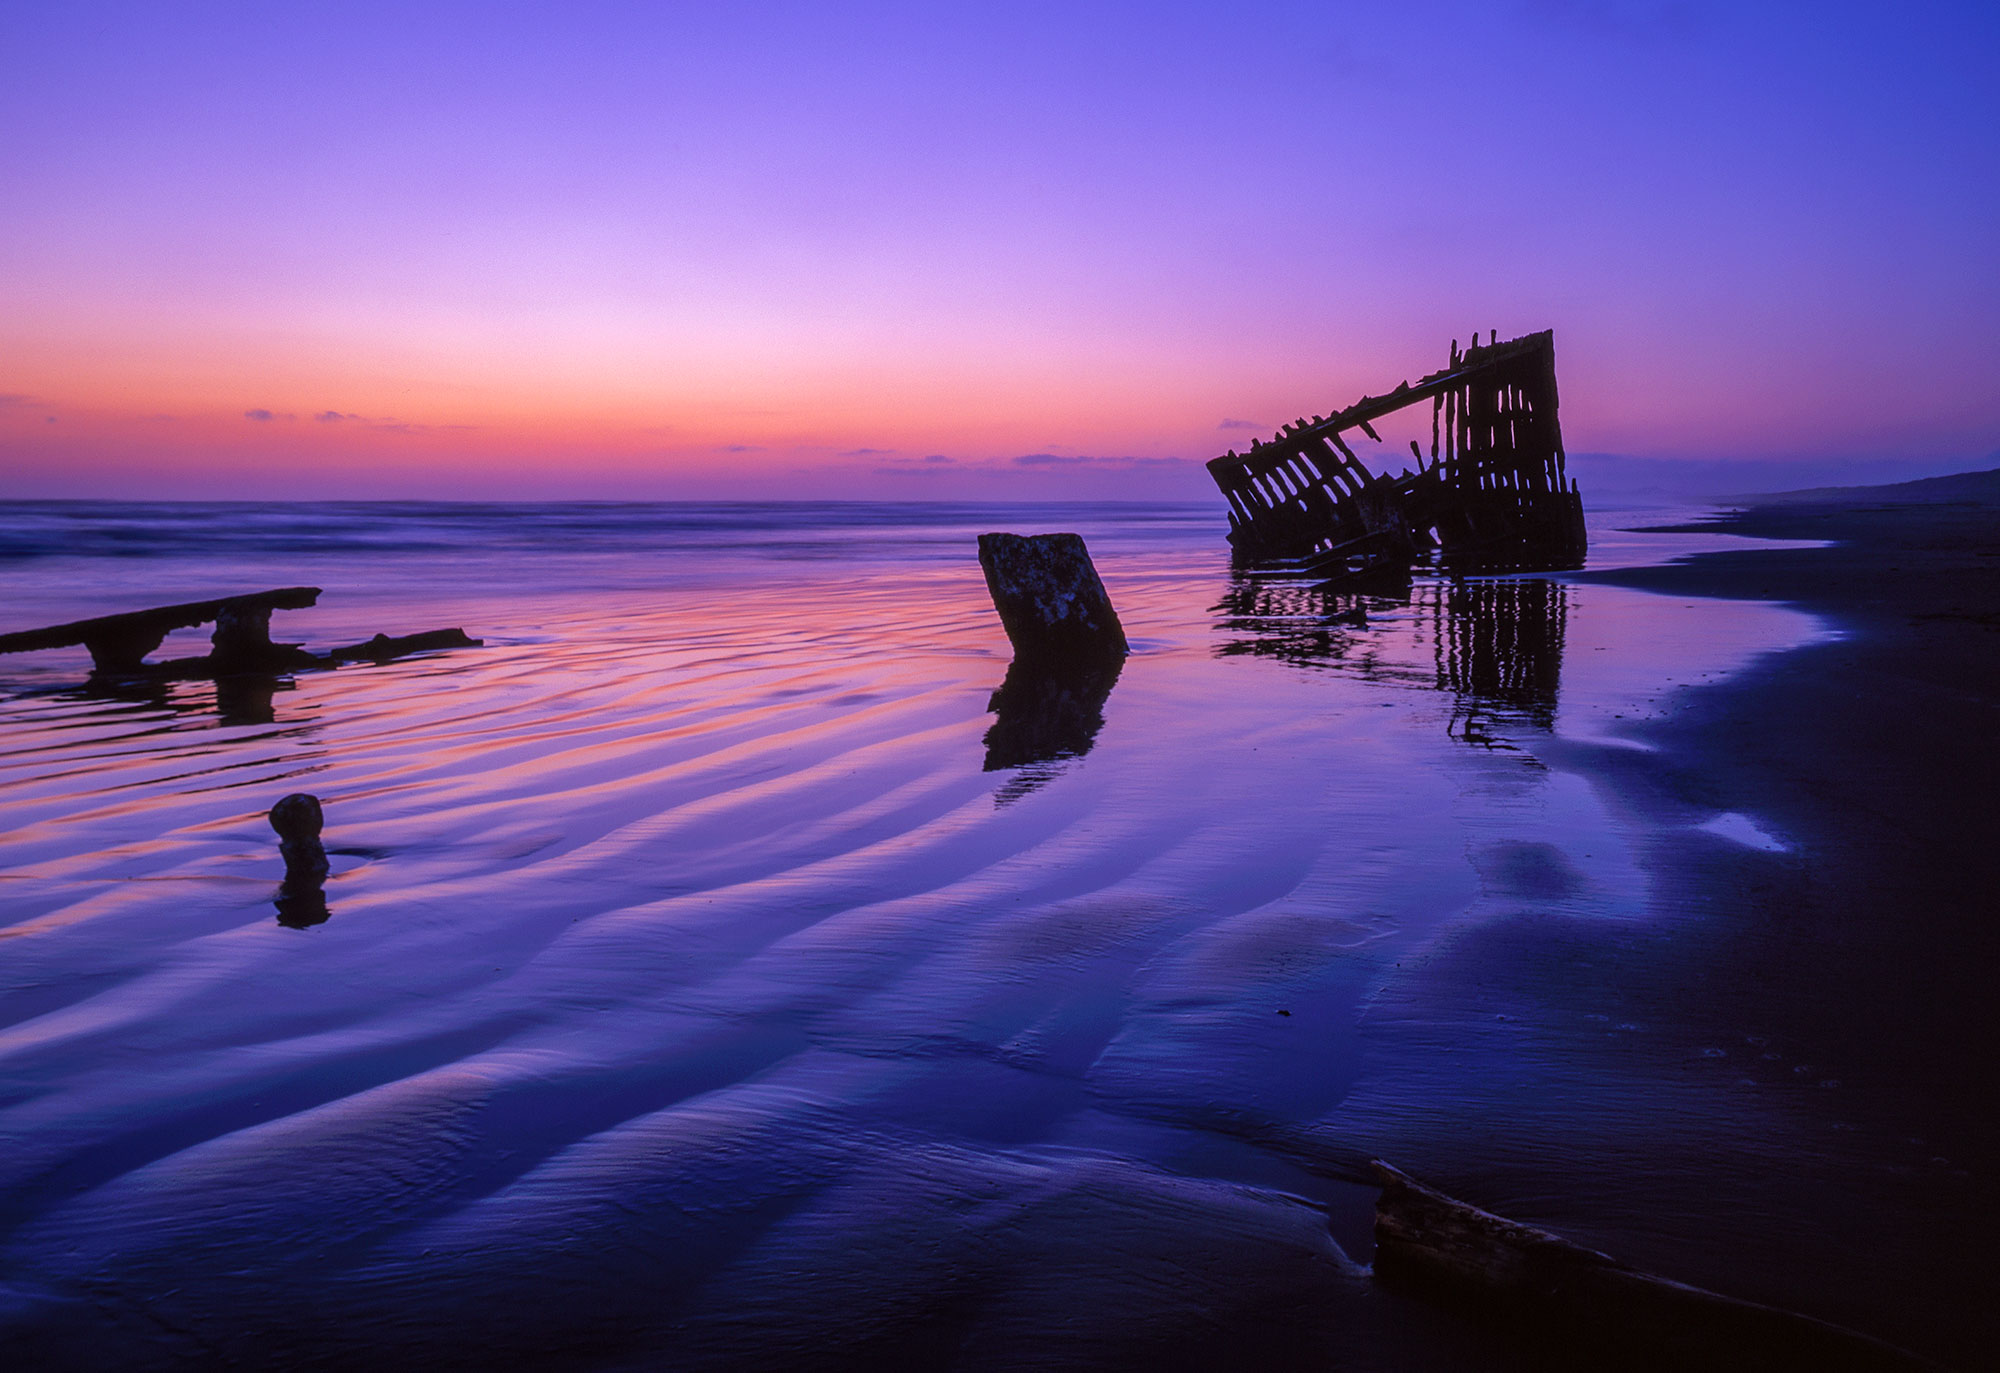 Wreck of the Peter Iredale on the Pacific Coast, Oregon near Astoria.